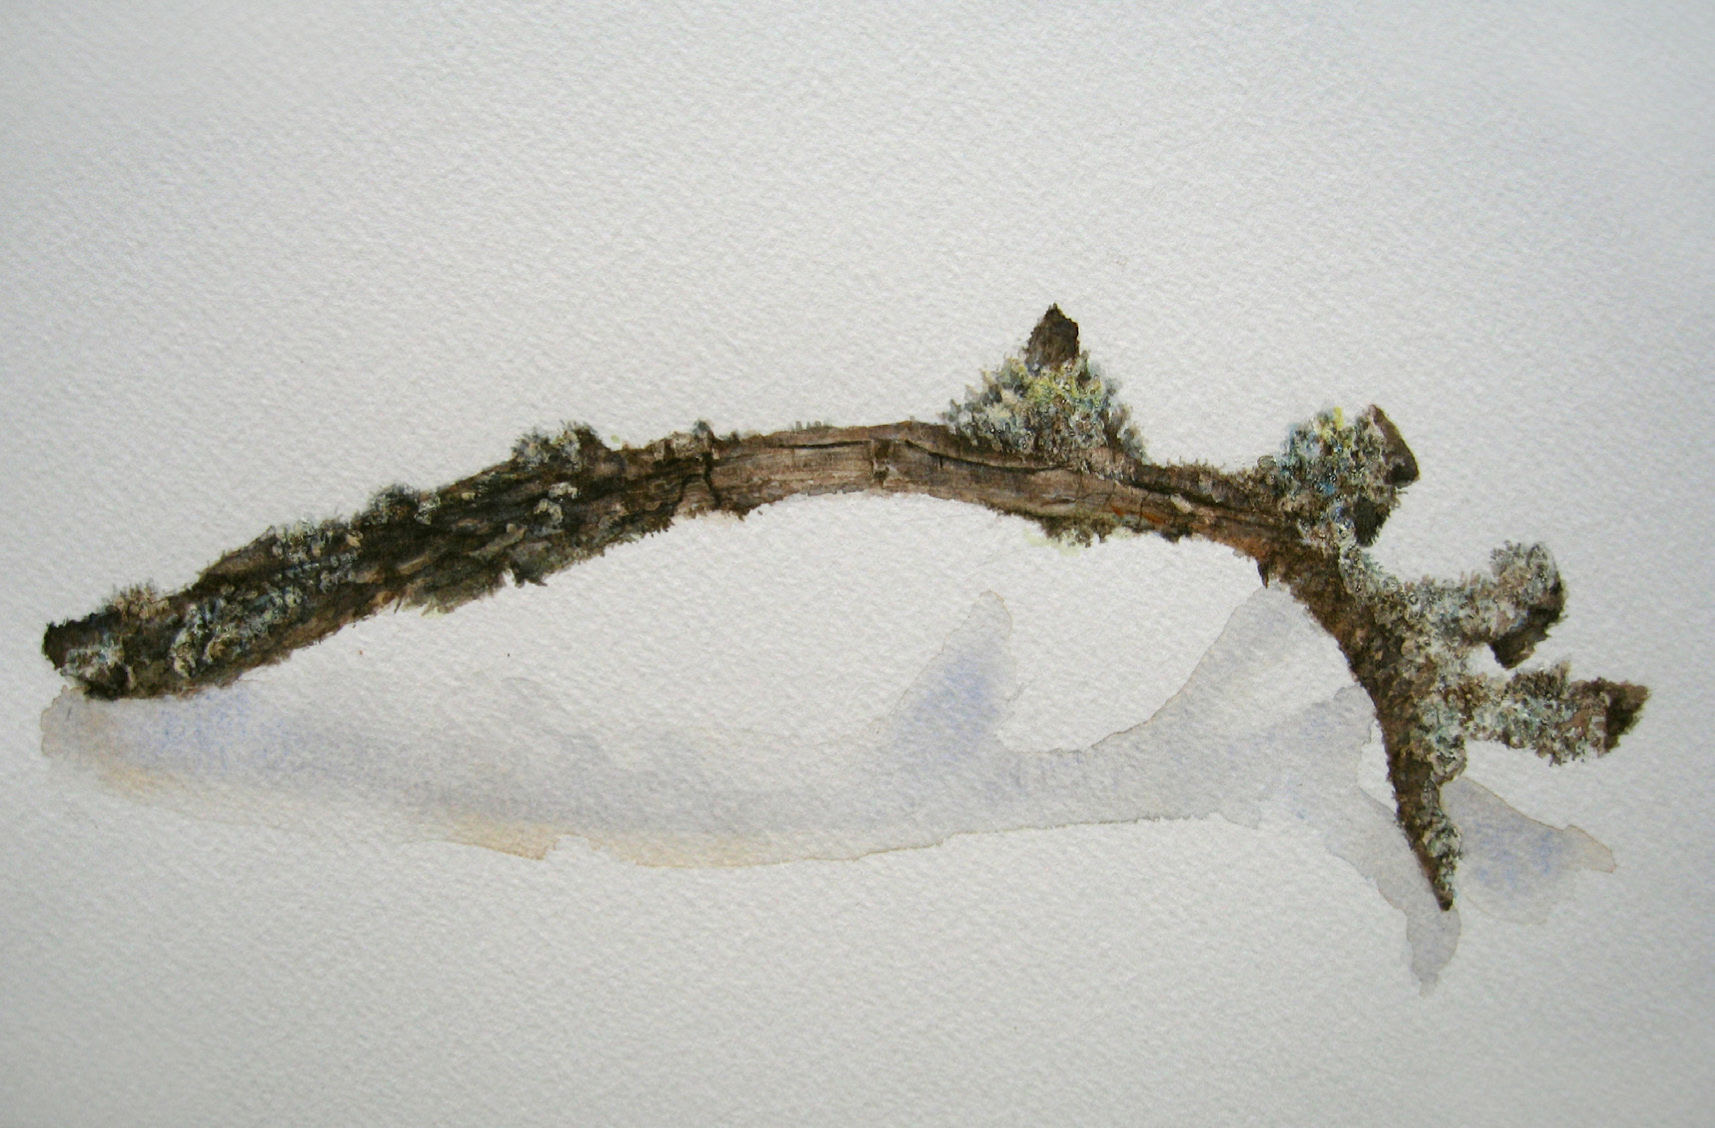 Study of a Twig